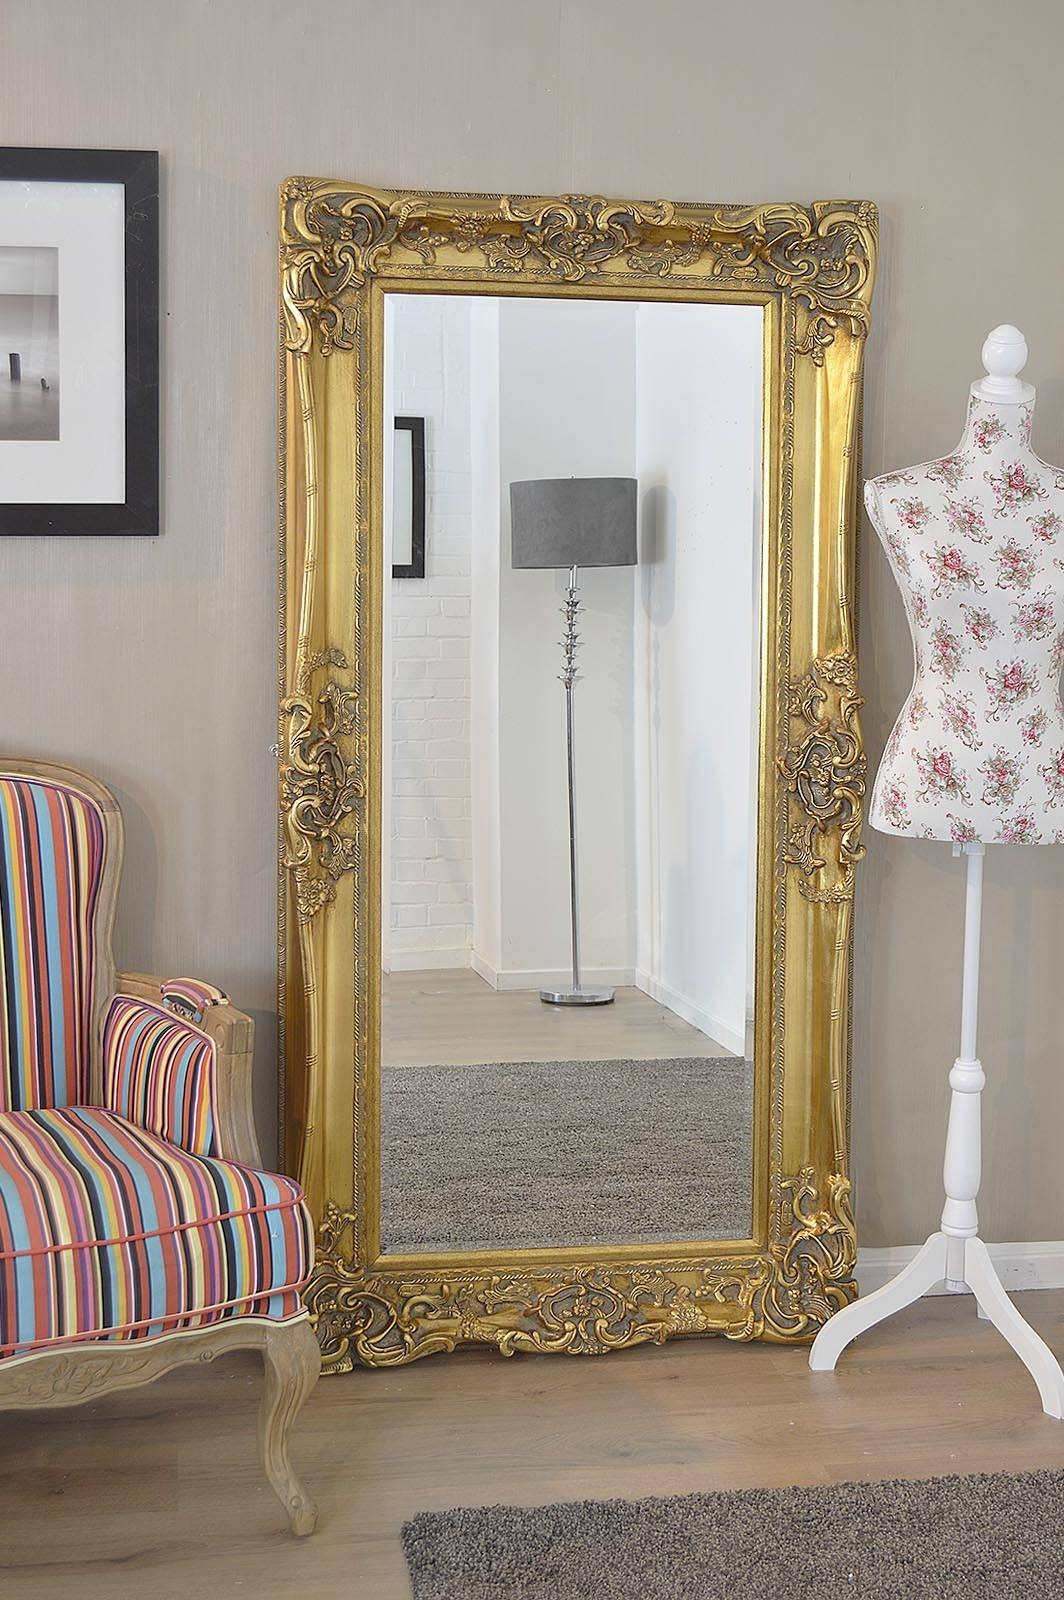 Ornate Mirrors For Sale 50 Outstanding For Nita Extra Large Silver throughout Silver Ornate Wall Mirrors (Image 19 of 25)